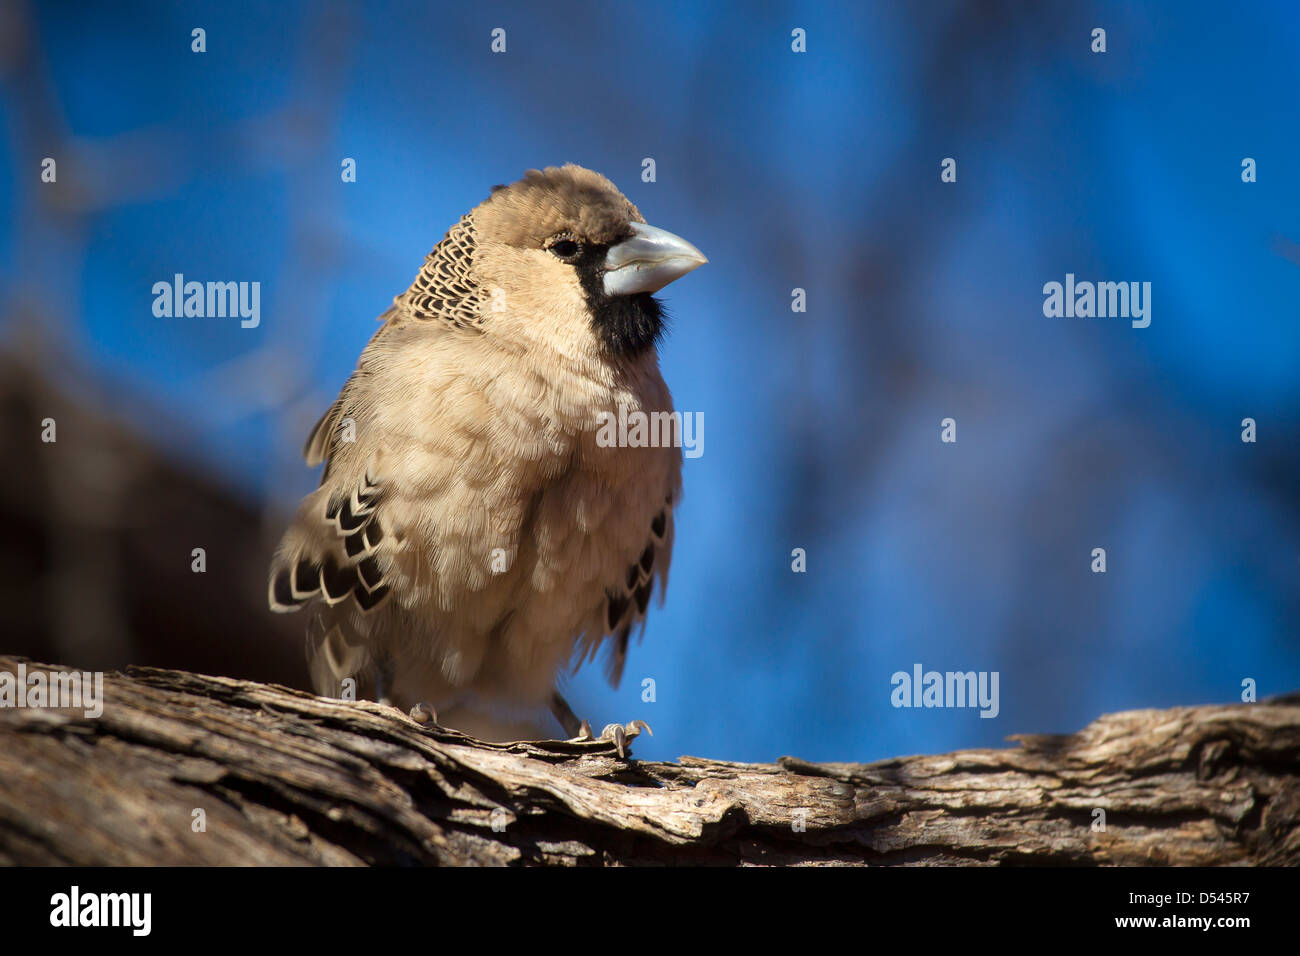 Portrait of a sociable weaver bird in a contemplative moment against a blue blurred background. - Stock Image